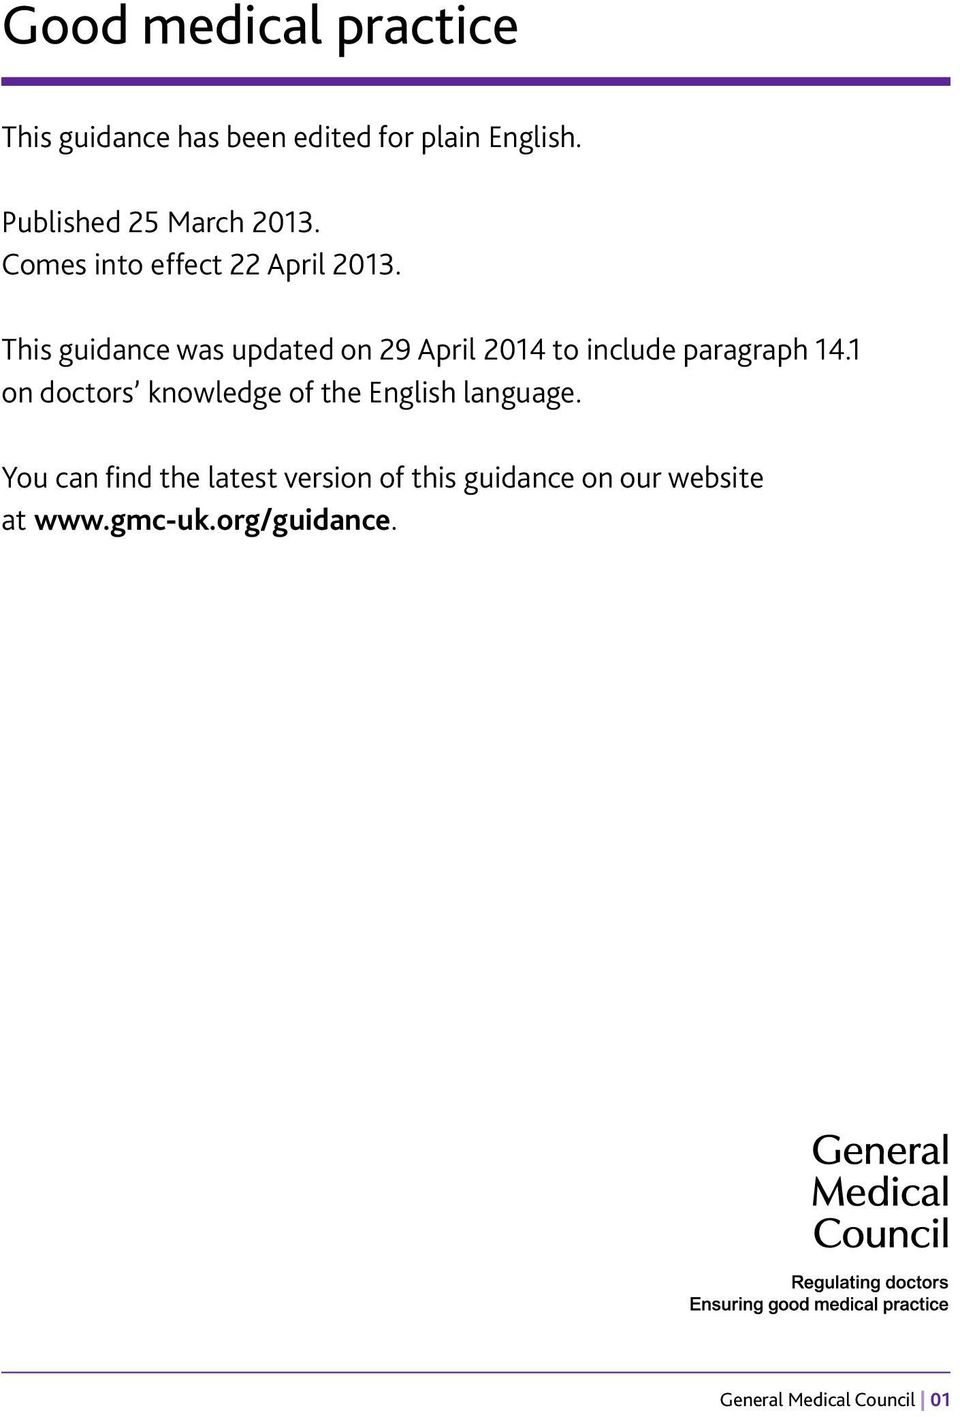 This guidance was updated on 29 April 2014 to include paragraph 14.